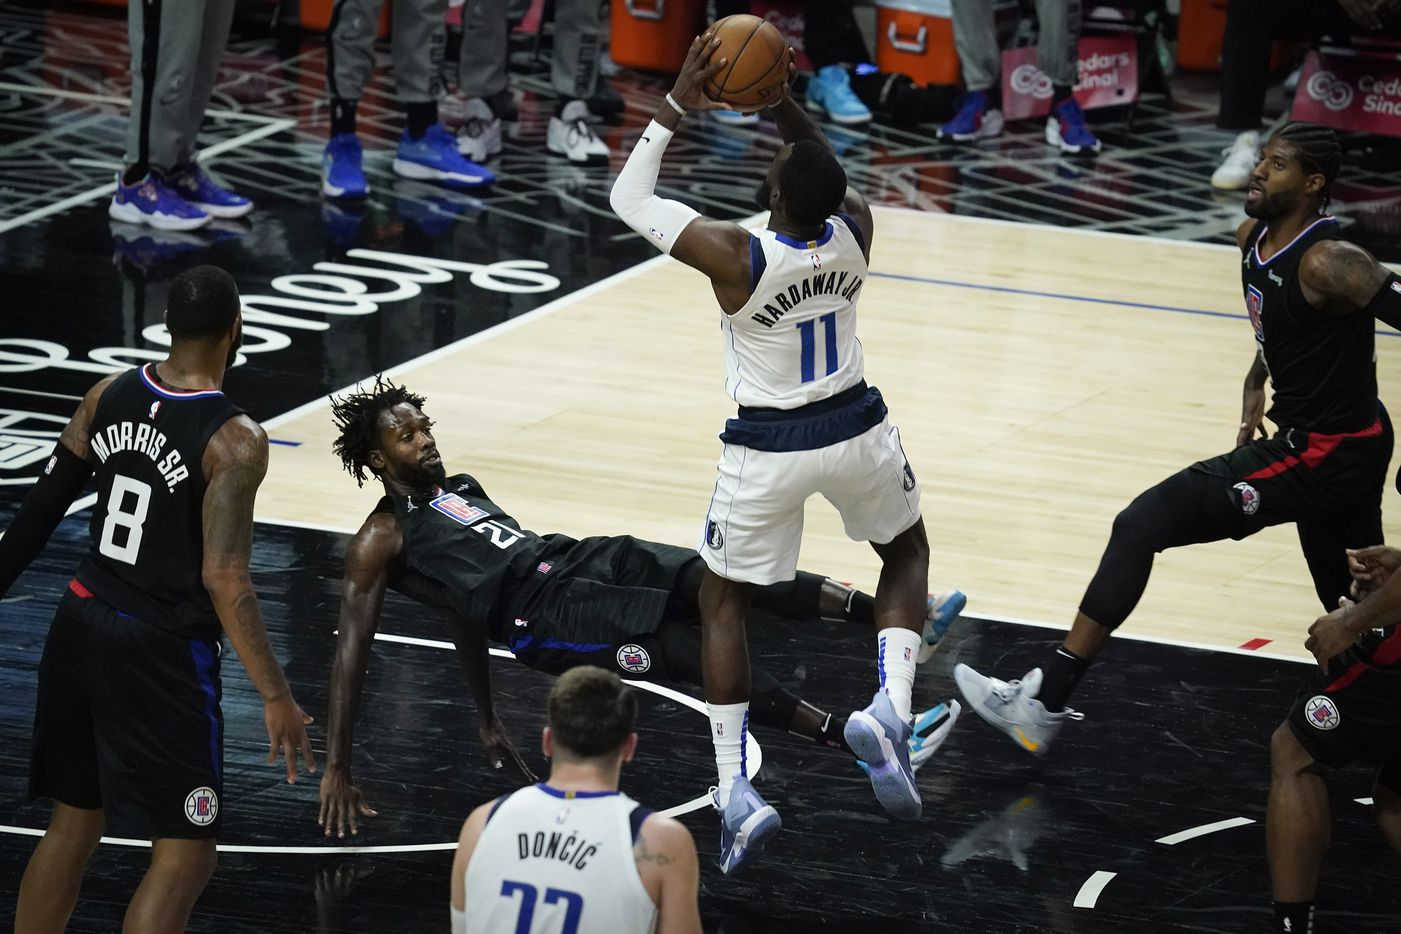 LA Clippers guard Patrick Beverley (21) falls to the ground as he picks up a foul on a drive by Dallas Mavericks forward Tim Hardaway Jr. (11) during the second half of an NBA playoff basketball game at Staples Center on Tuesday, May 25, 2021, in Los Angeles.